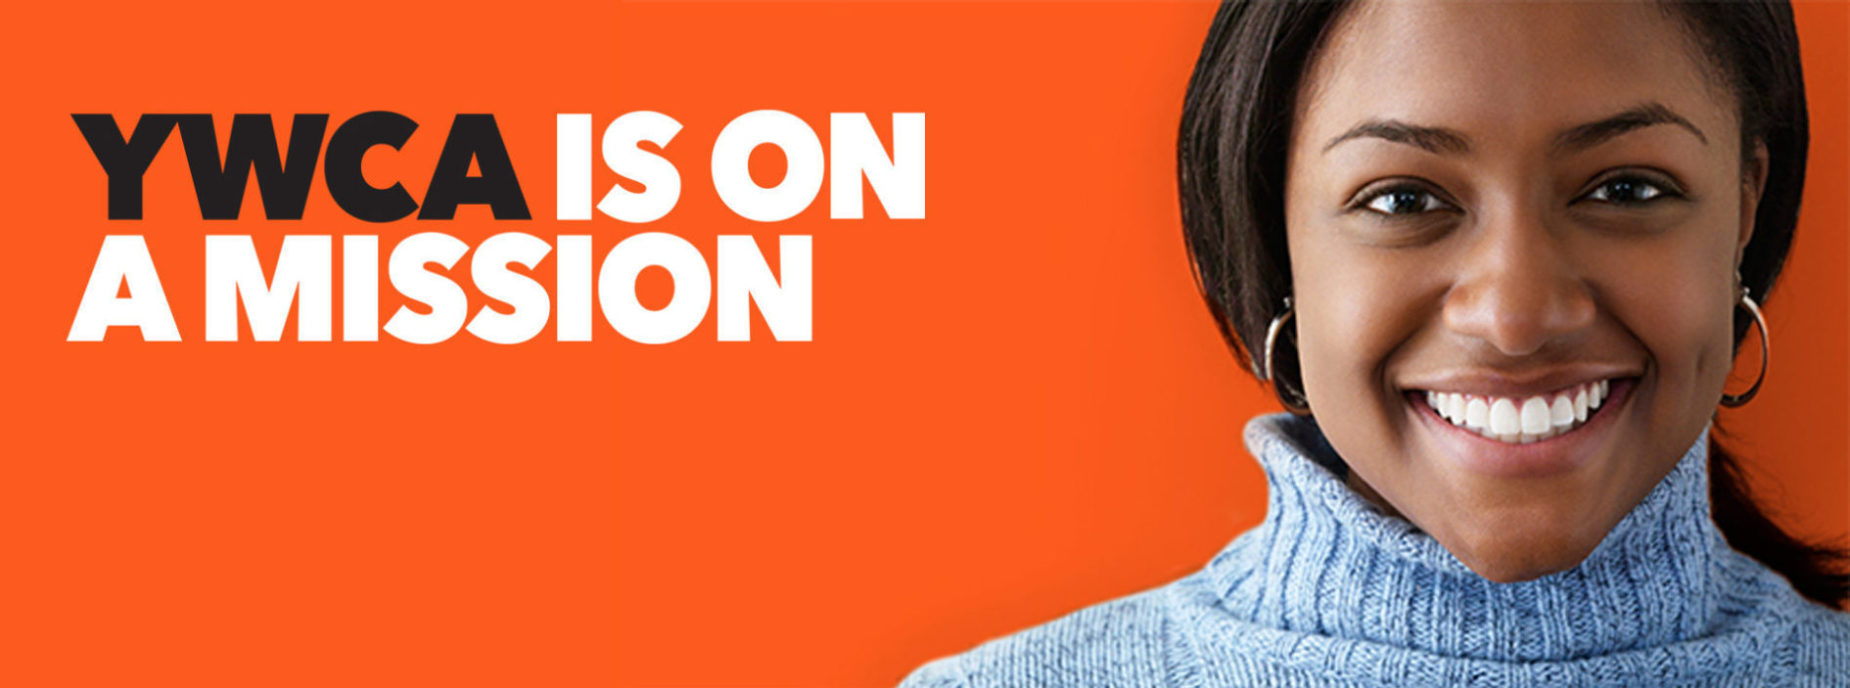 This orange banner features a smiling young woman. 'YWCA Is On A Mission' is written beside her picture.